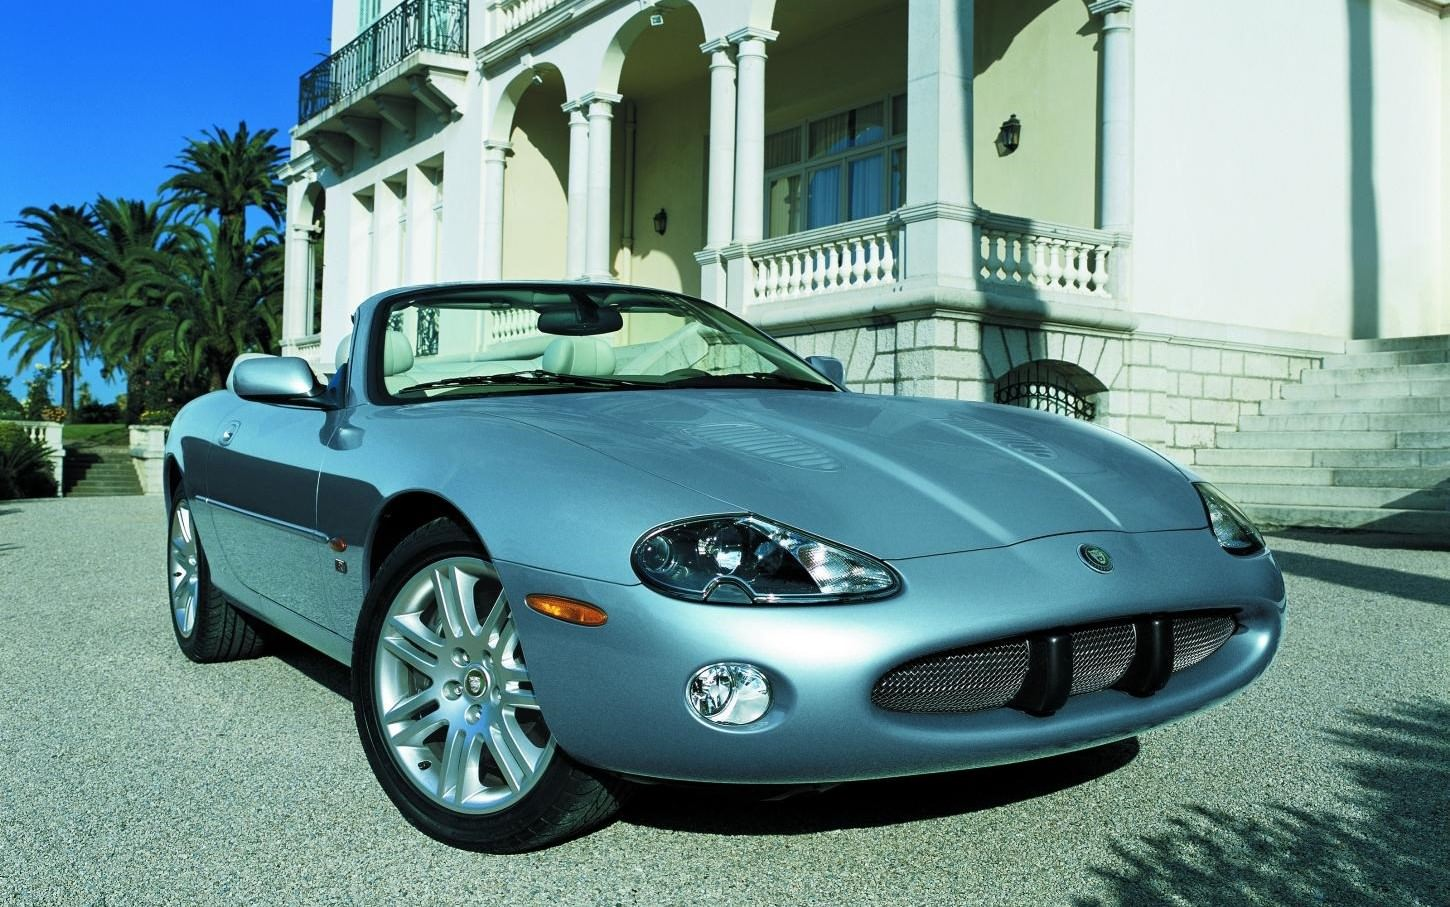 image of a blue jaguar xkr convertible car exterior